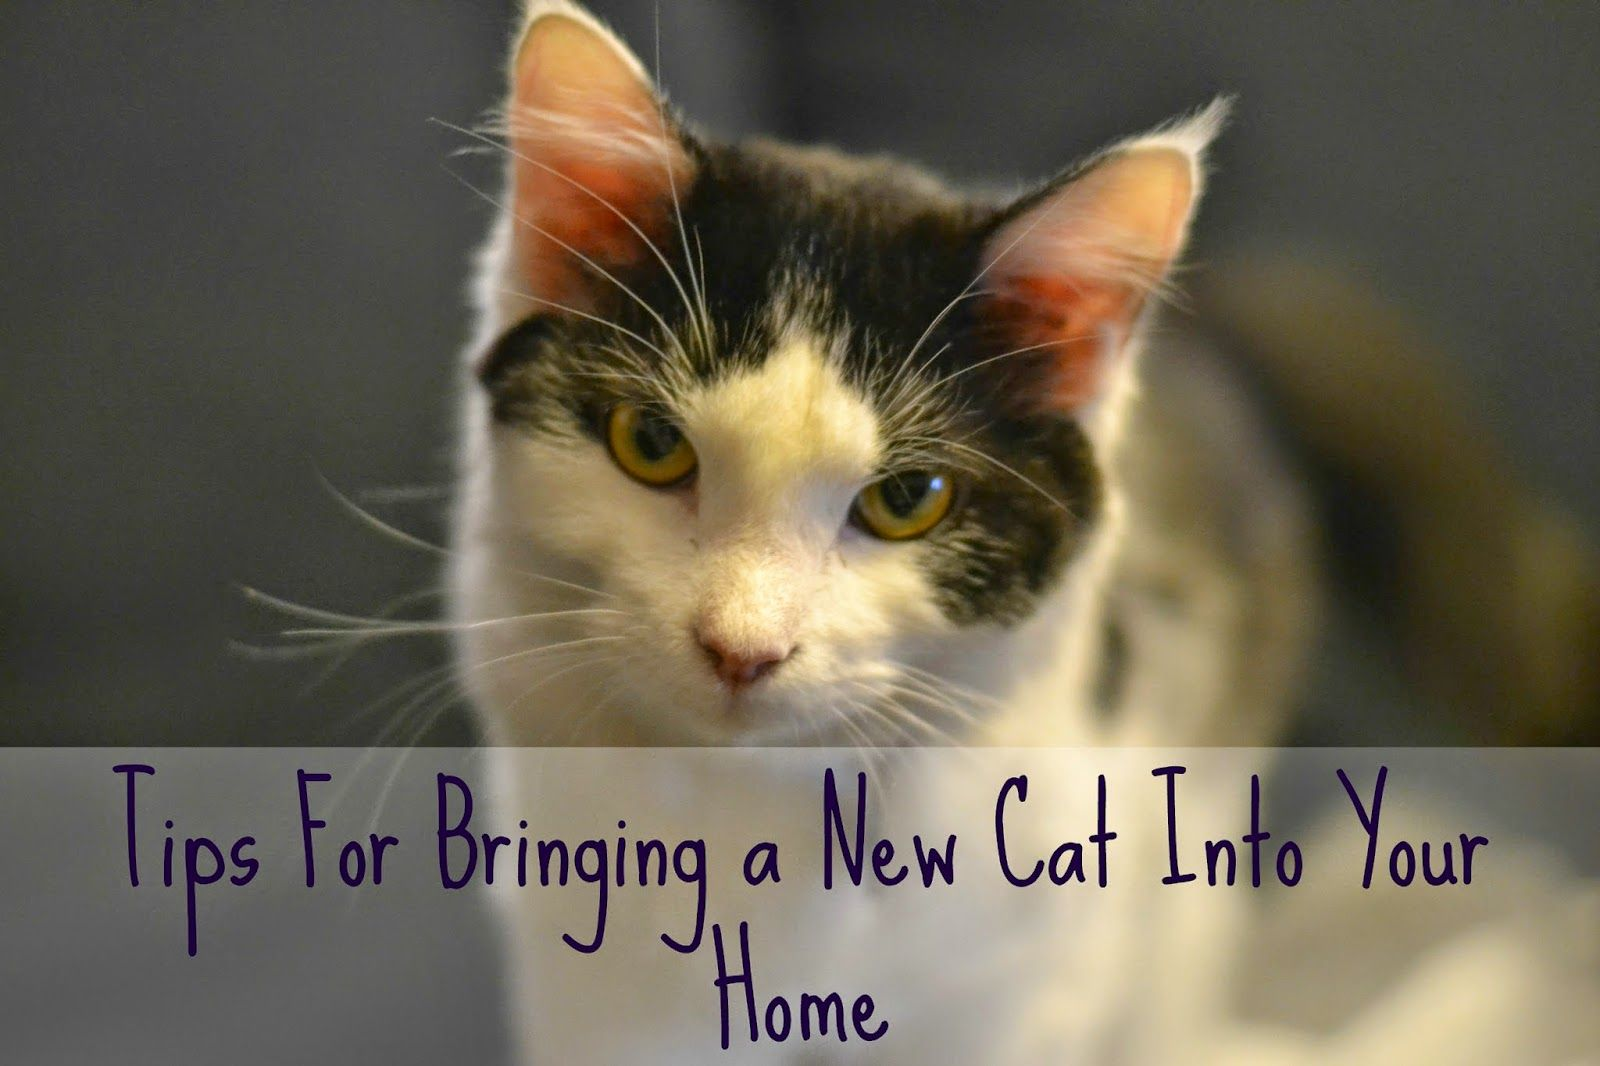 Tips For Bringing A New Cat Into Your Home Cats Cat Training Cat Biting